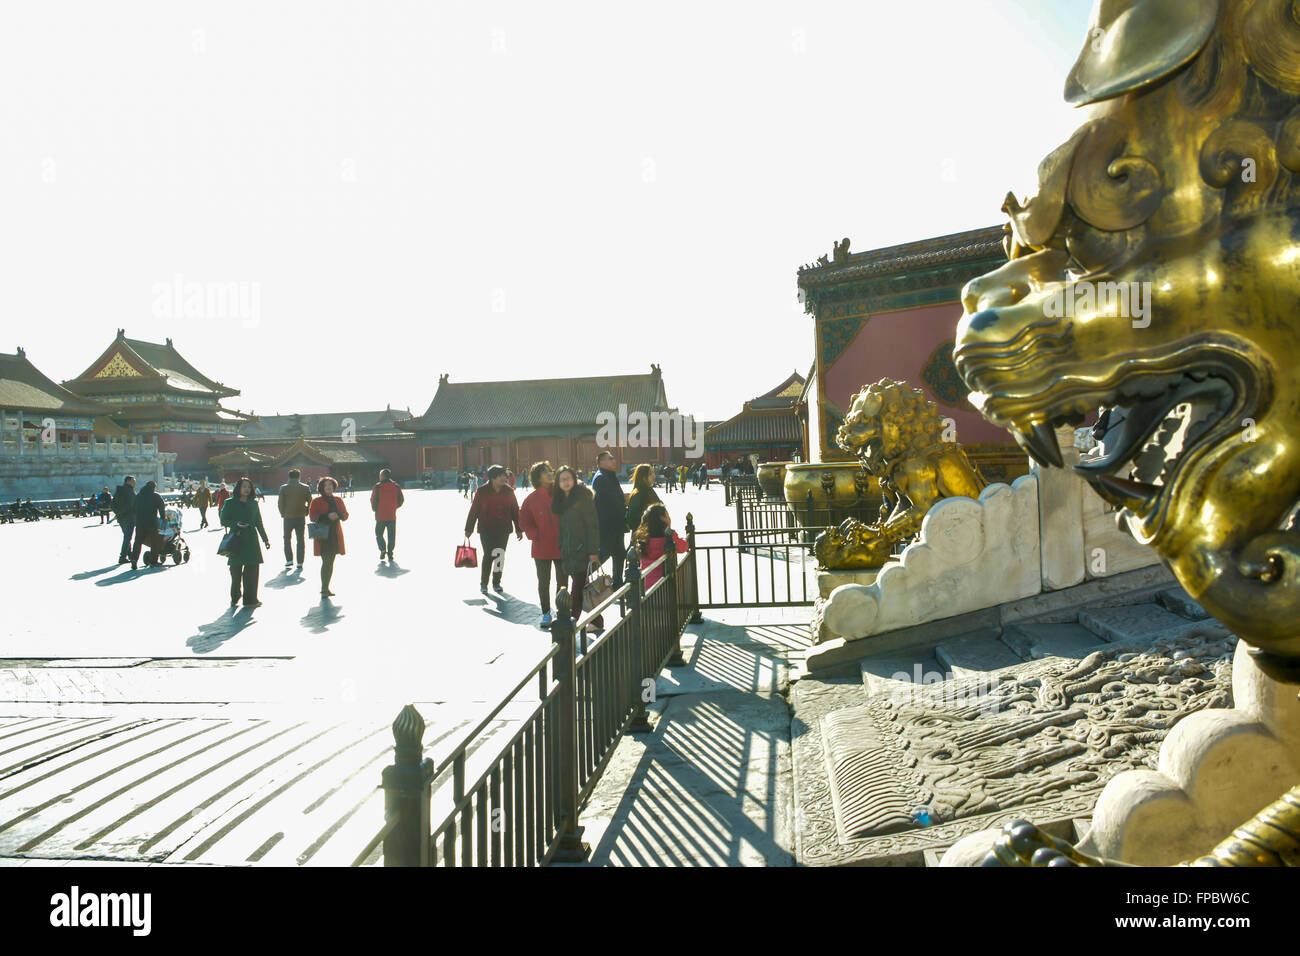 The Forbidden City, Beijing, China, Sunday, 13 March, 2016.  Tourists in the Forbidden City, Beijing. - Stock Image